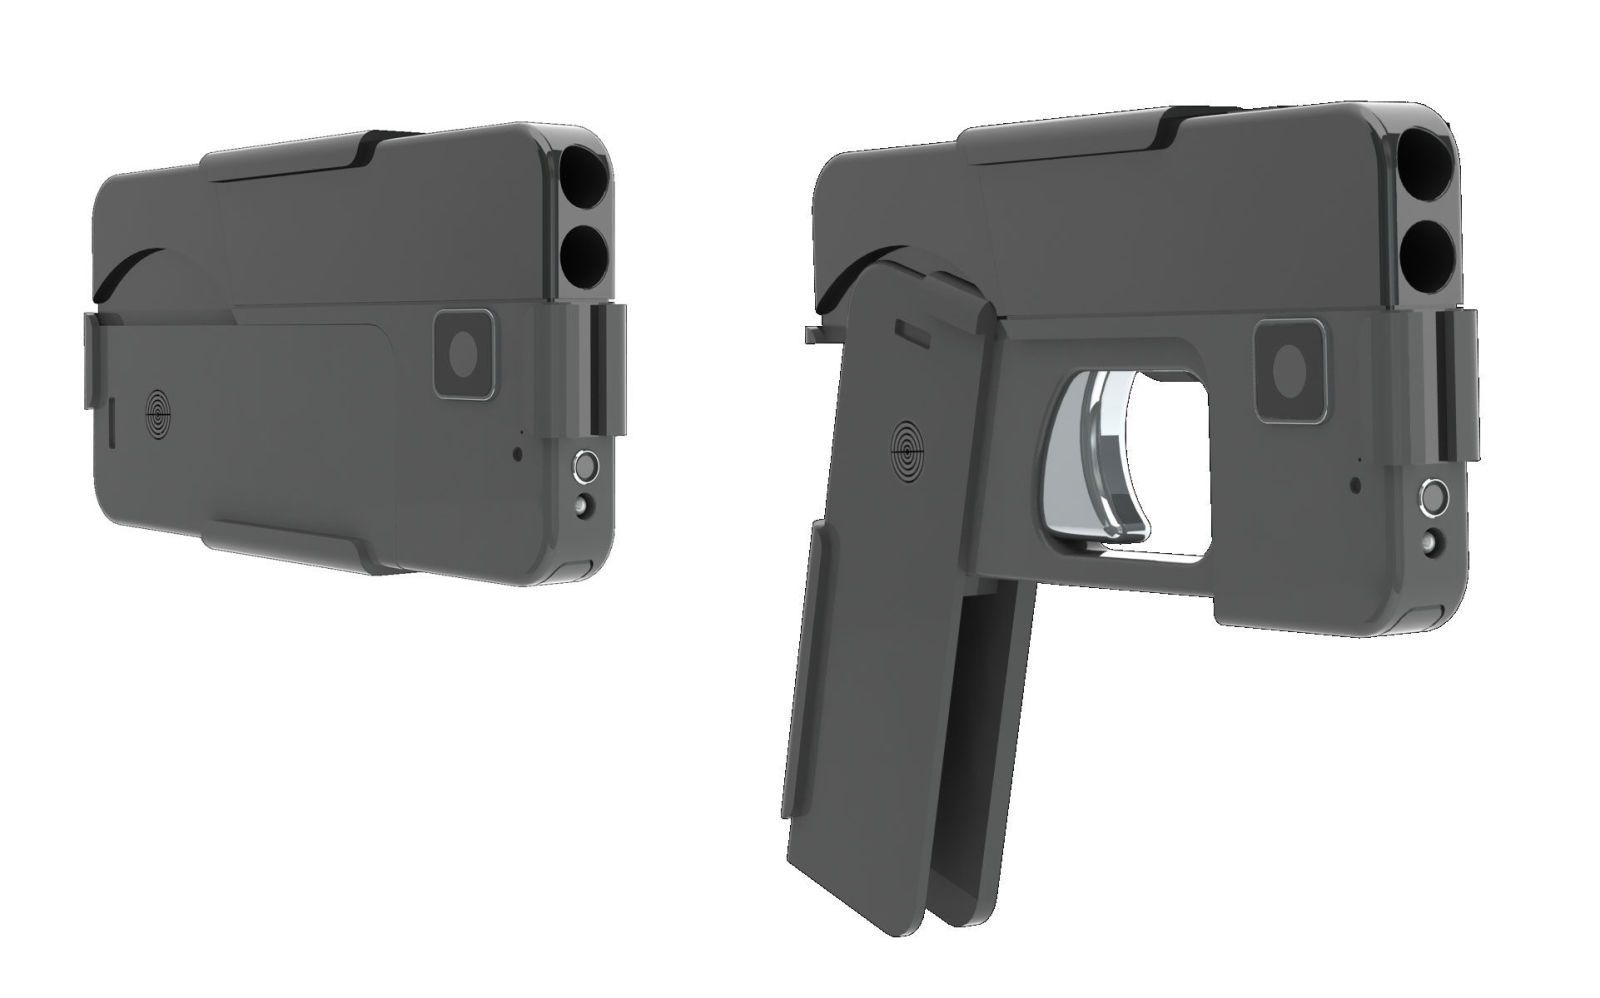 This Smartphone Gun Is One Hell of a Concealed Weapon